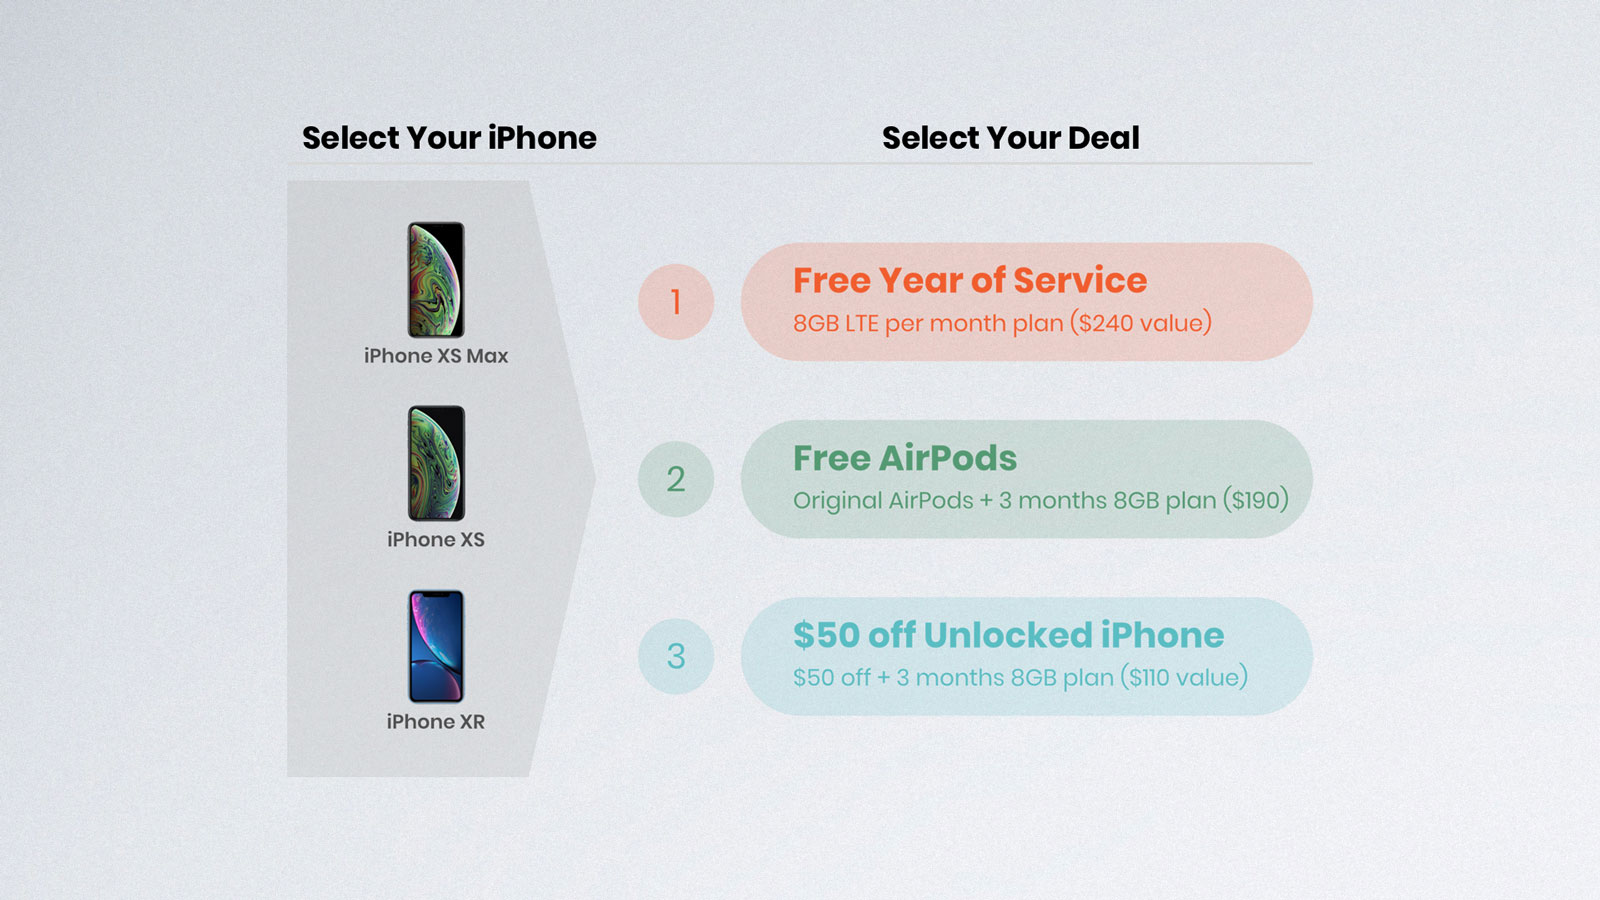 iPhone XS, XS Max, and iPhone XR stacked vertically on the left with an overview of Mint Mobile's iPhone promotion deals on the right